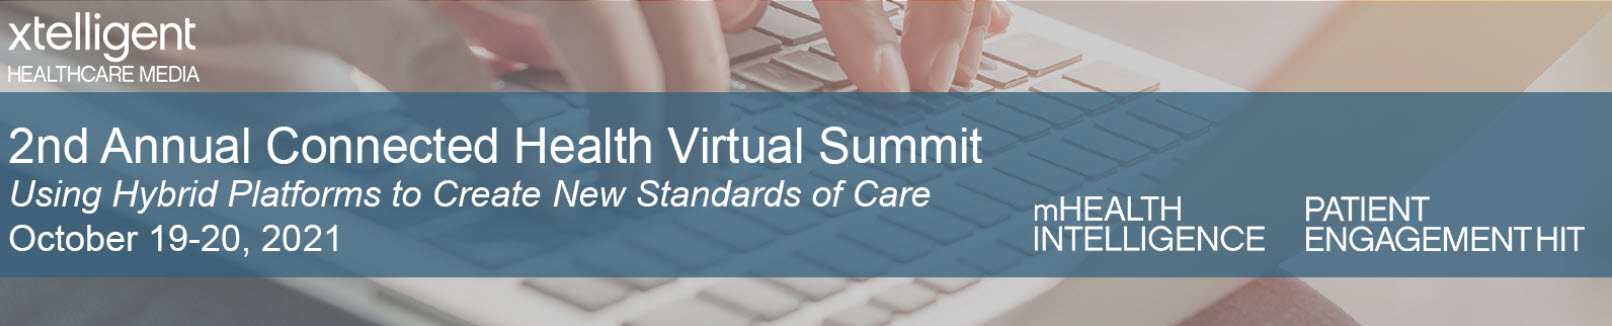 Connected Health Virtual Summit banner